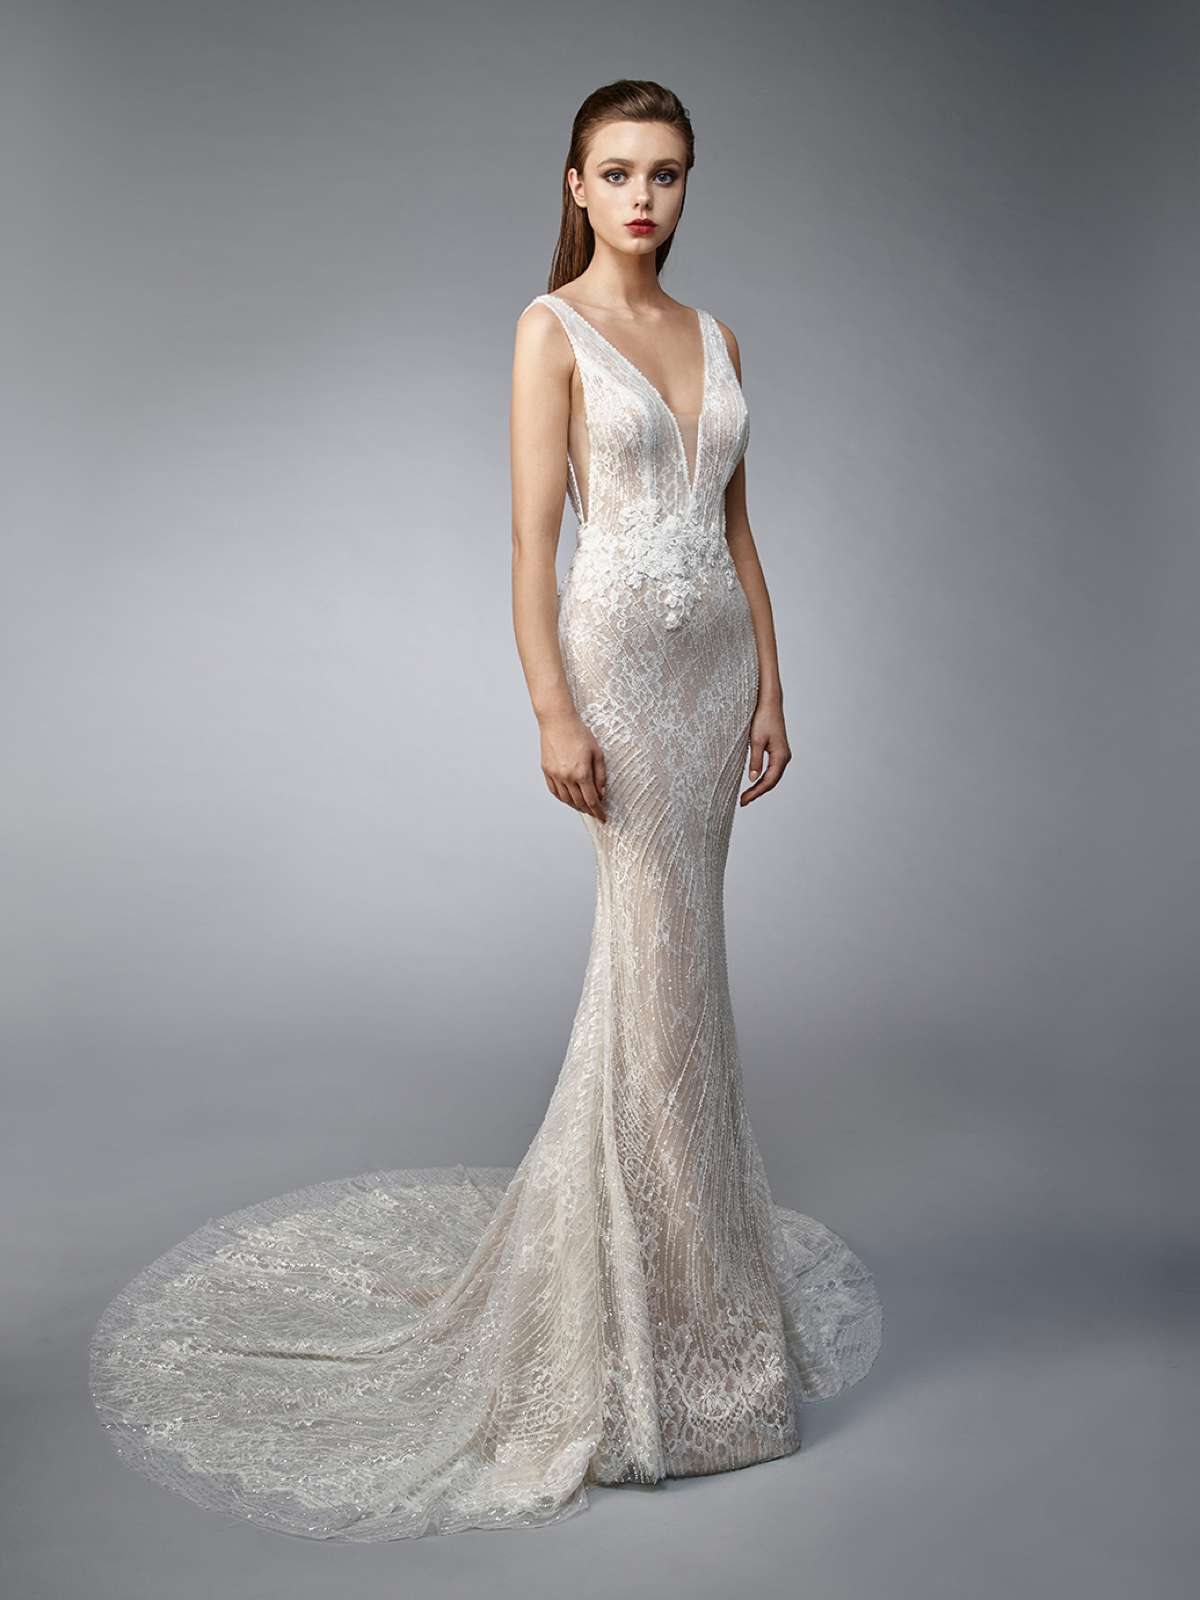 0cee01b0d7c20 Nicky by Enzoani - Find Your Dream Dress